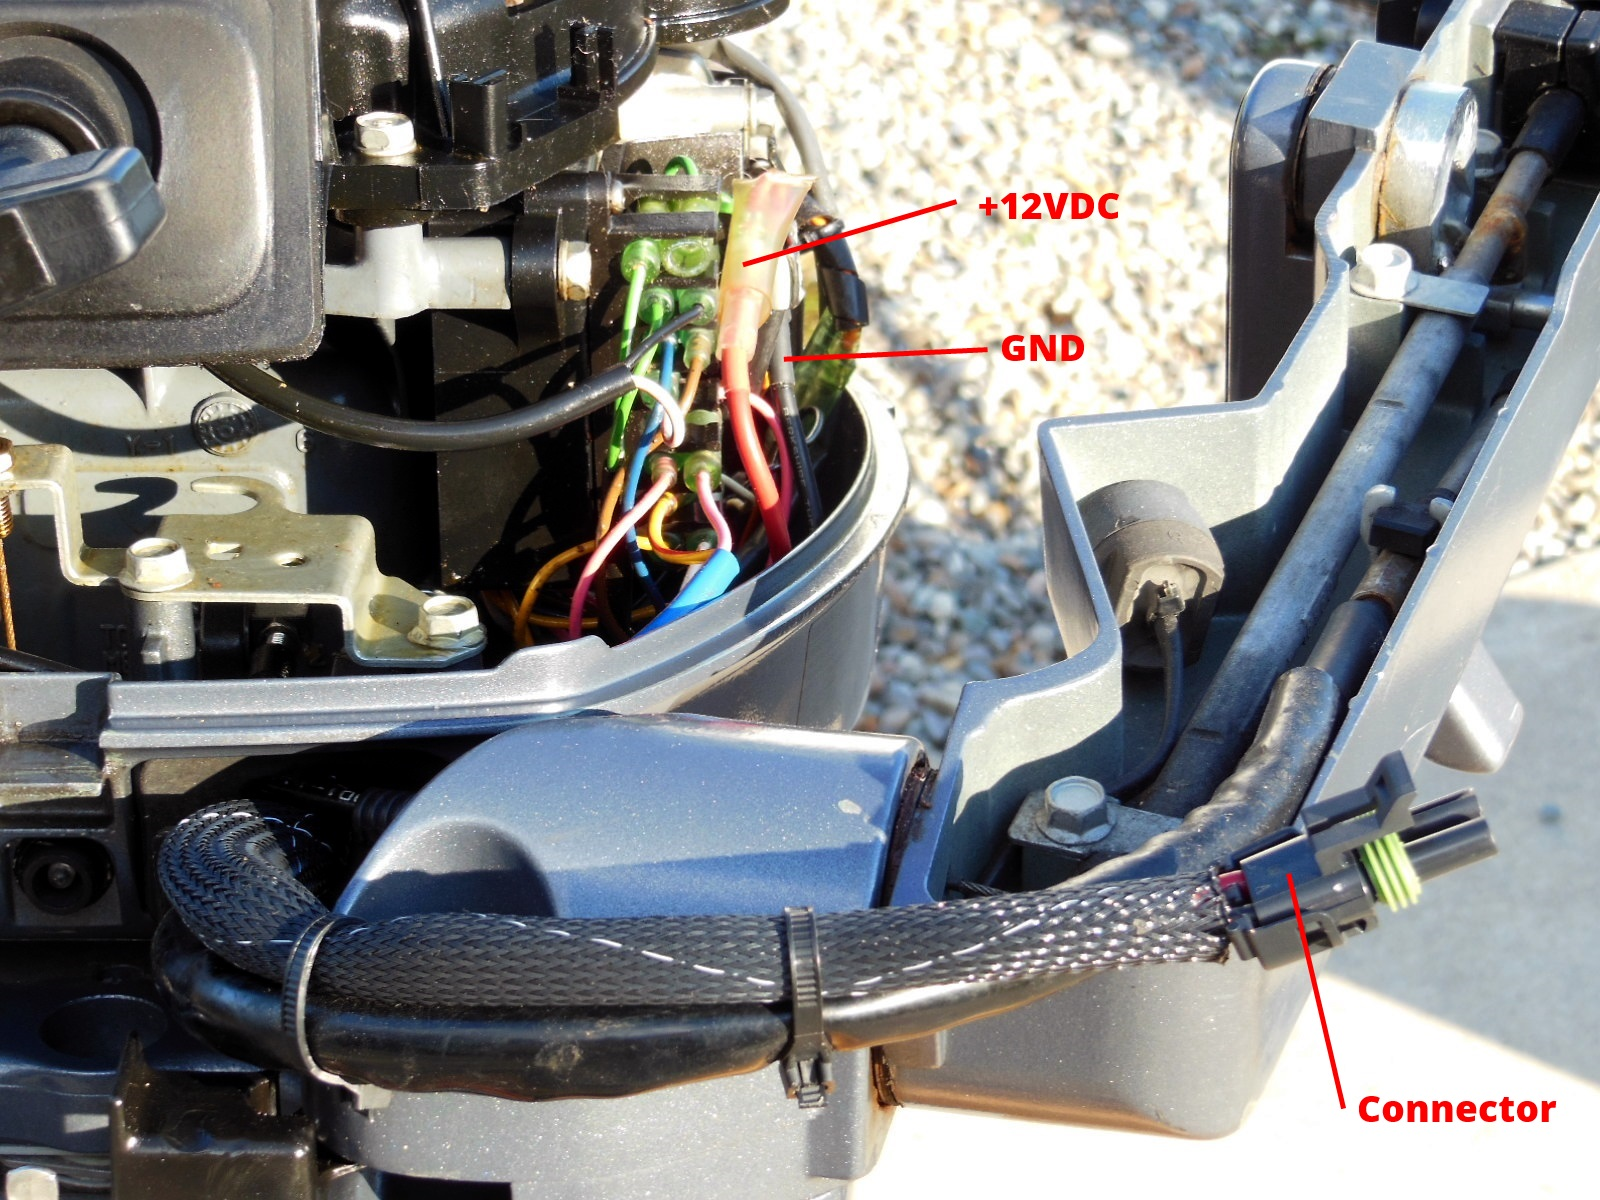 johnson 115 outboard wiring diagram single gang two way light switch upgrade your motor to charge battery – the $tingy sailor